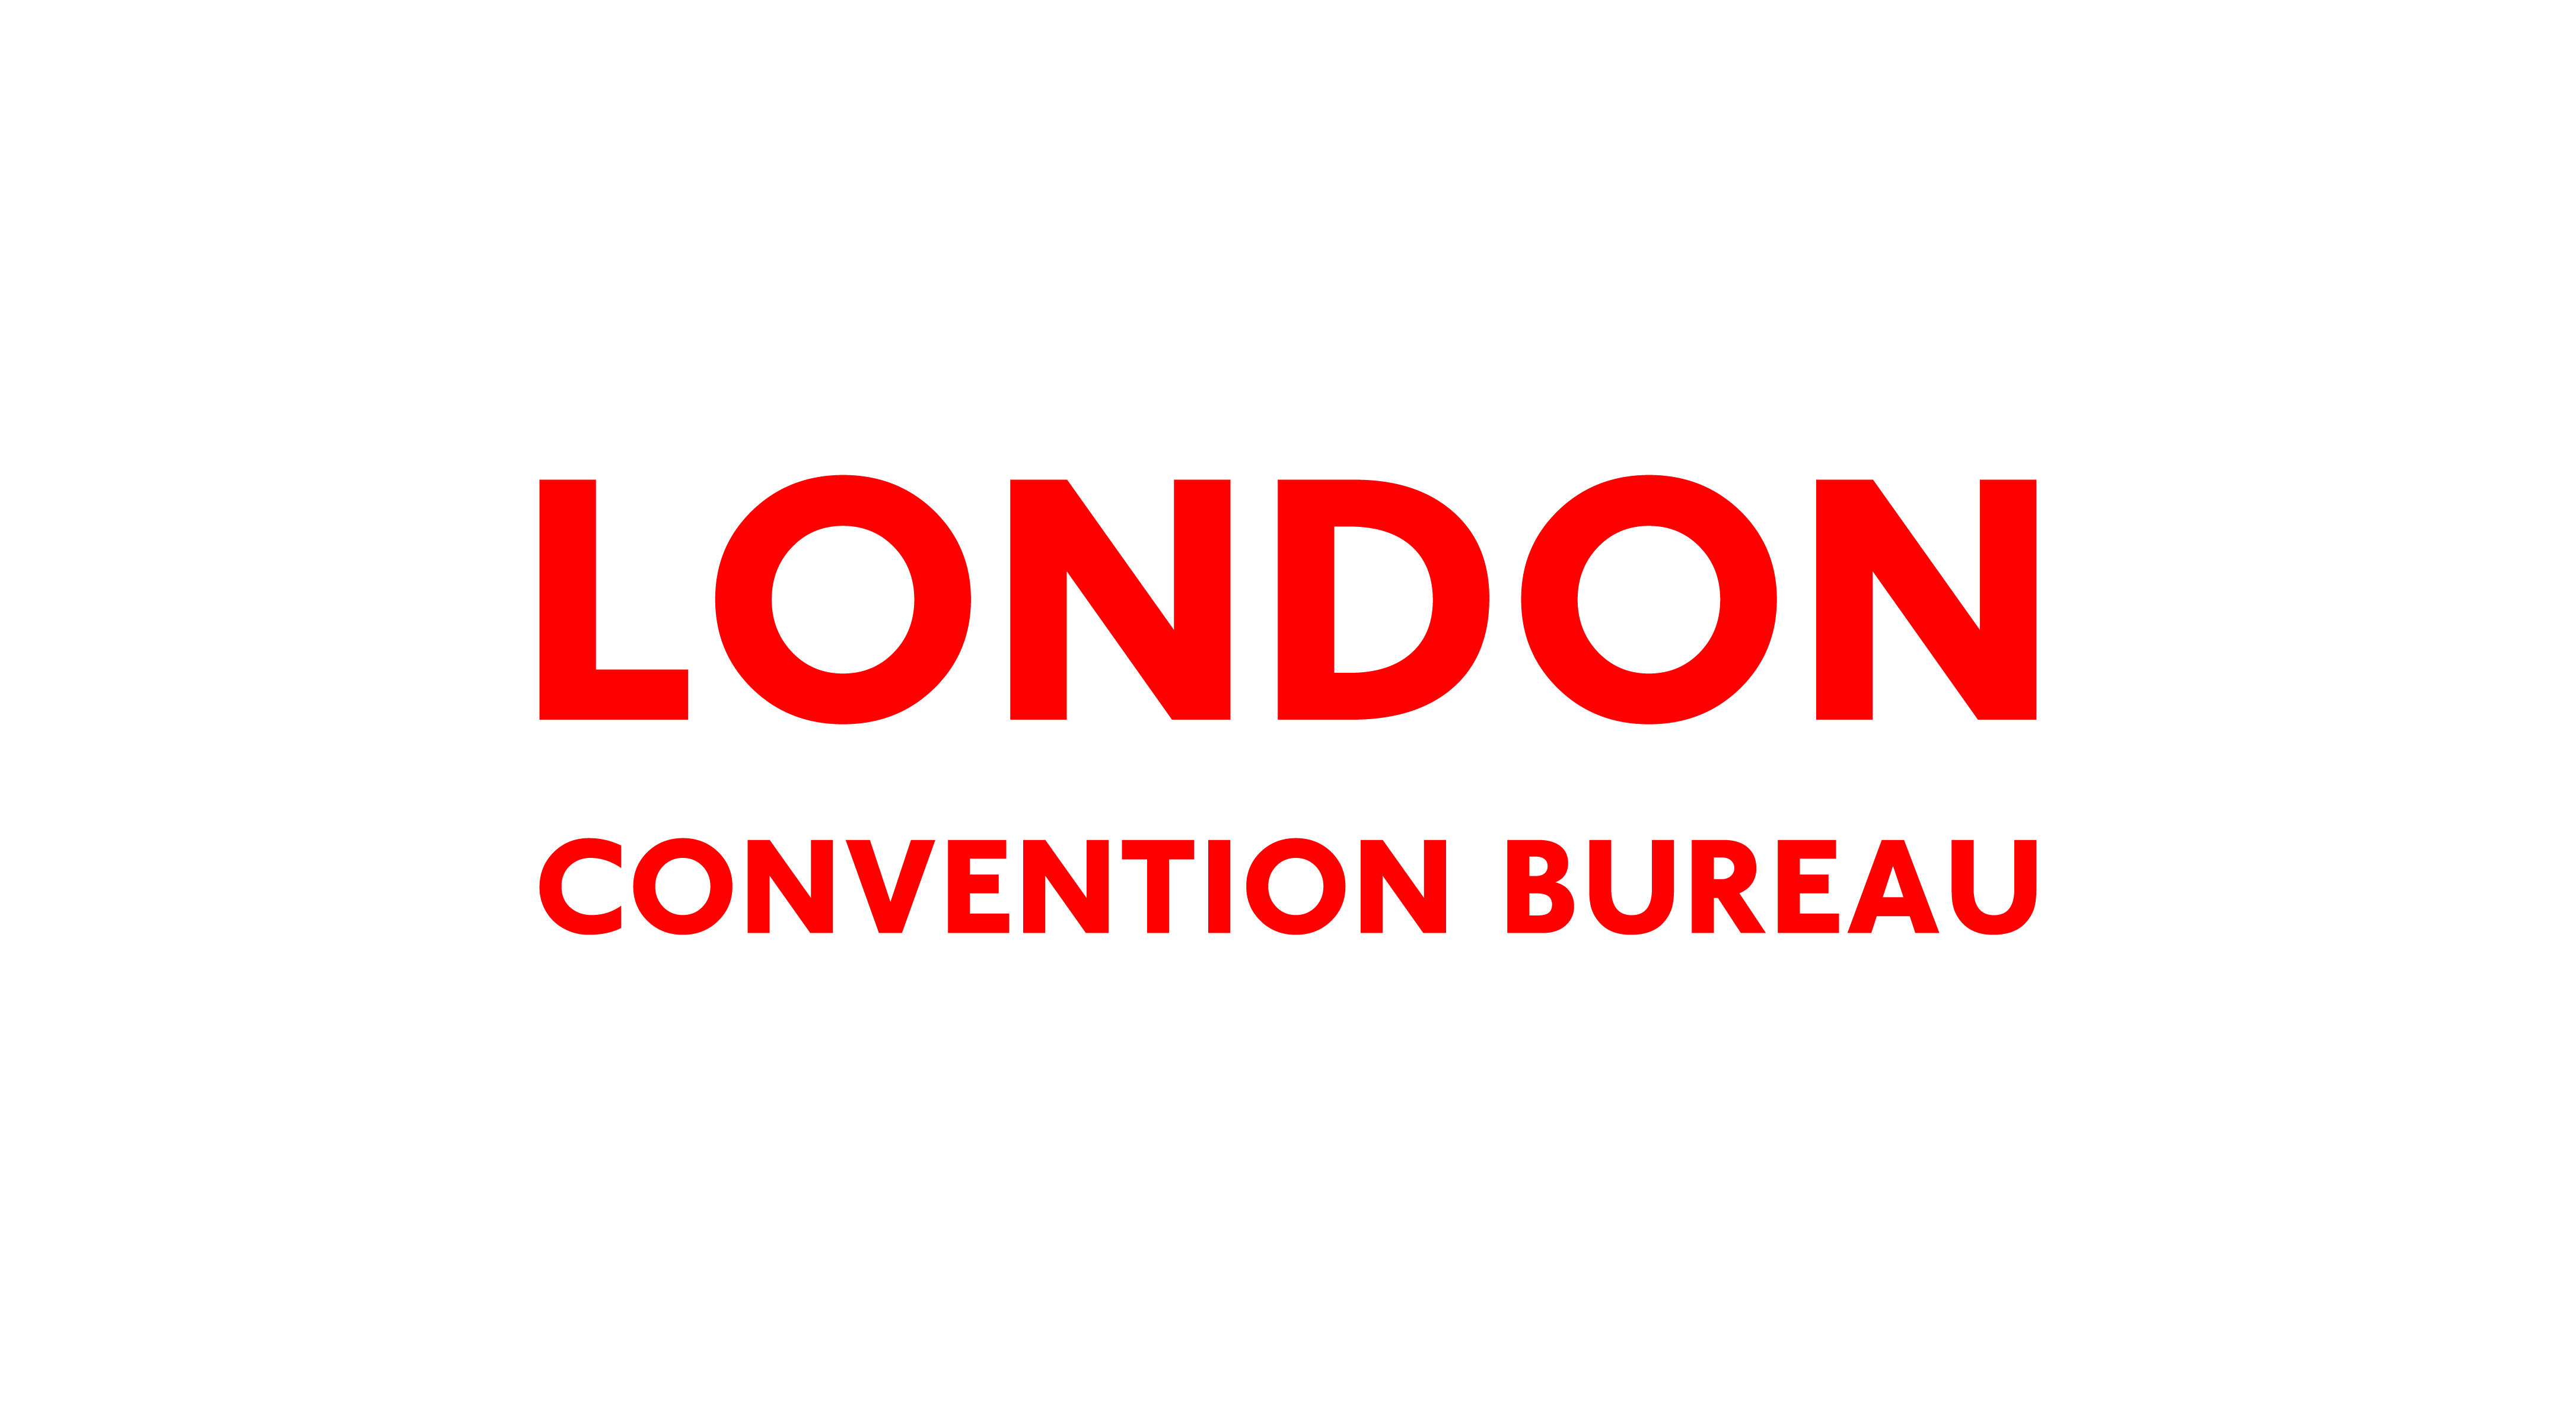 London-CVB-red